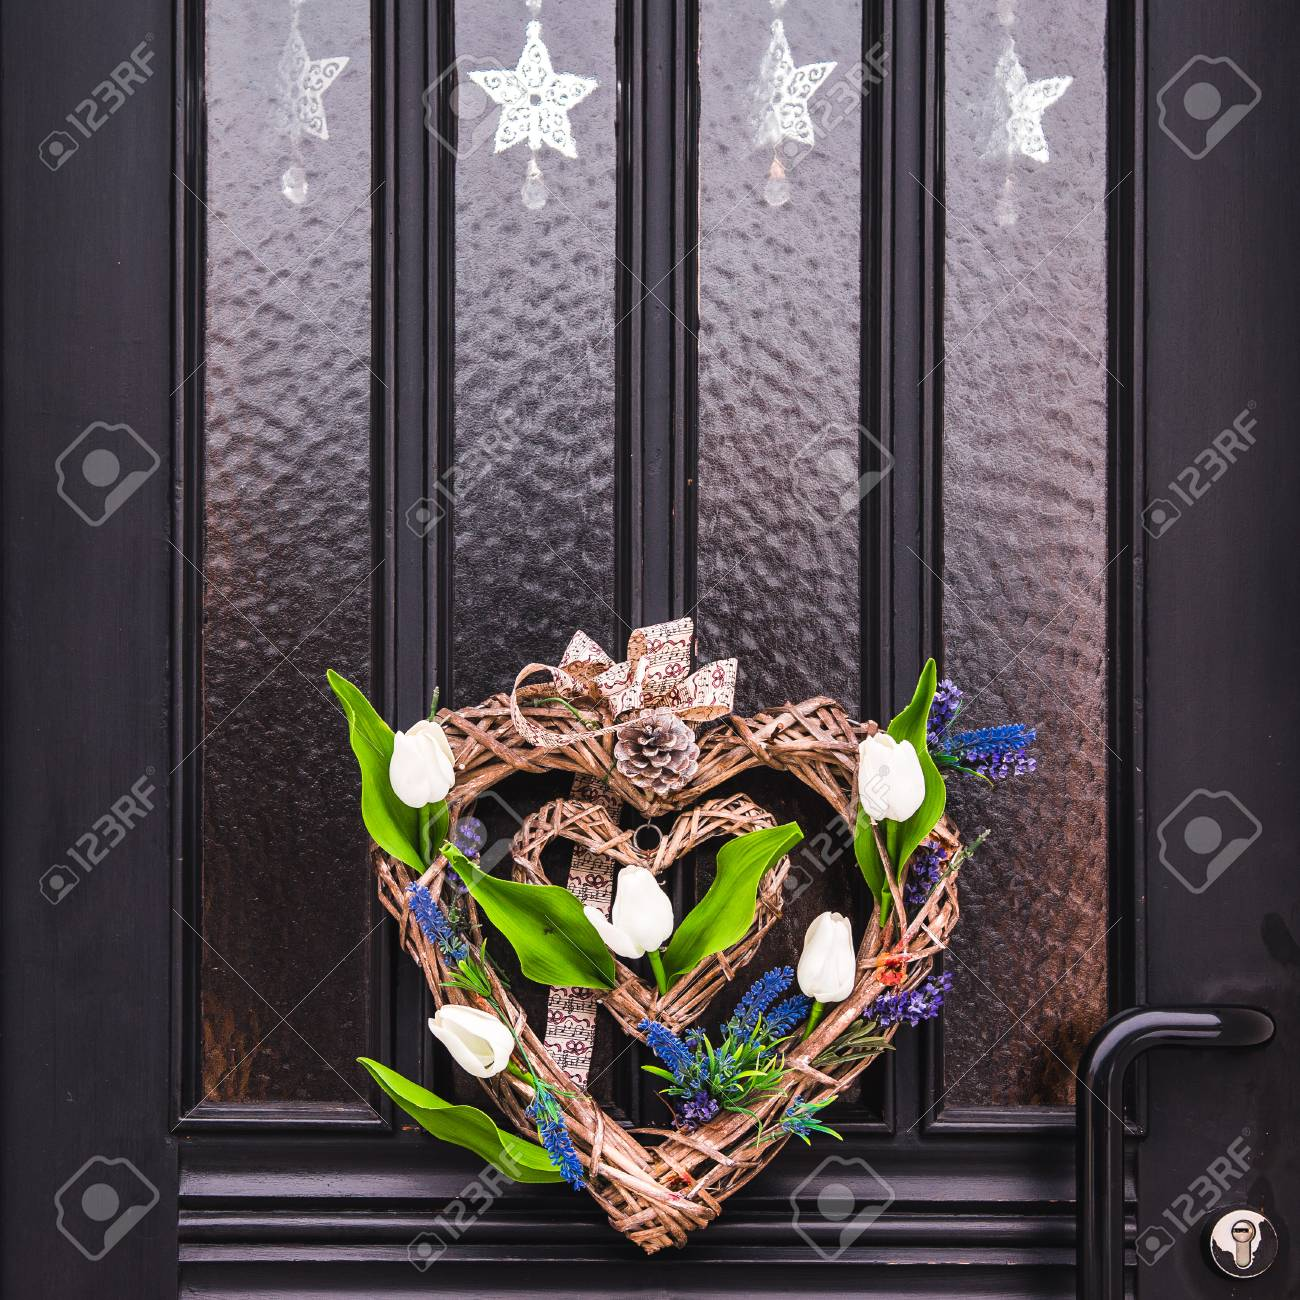 Home Entrance With Decorative Wreath On Front Door Essen Germany Stock Photo Picture And Royalty Free Image Image 117516847